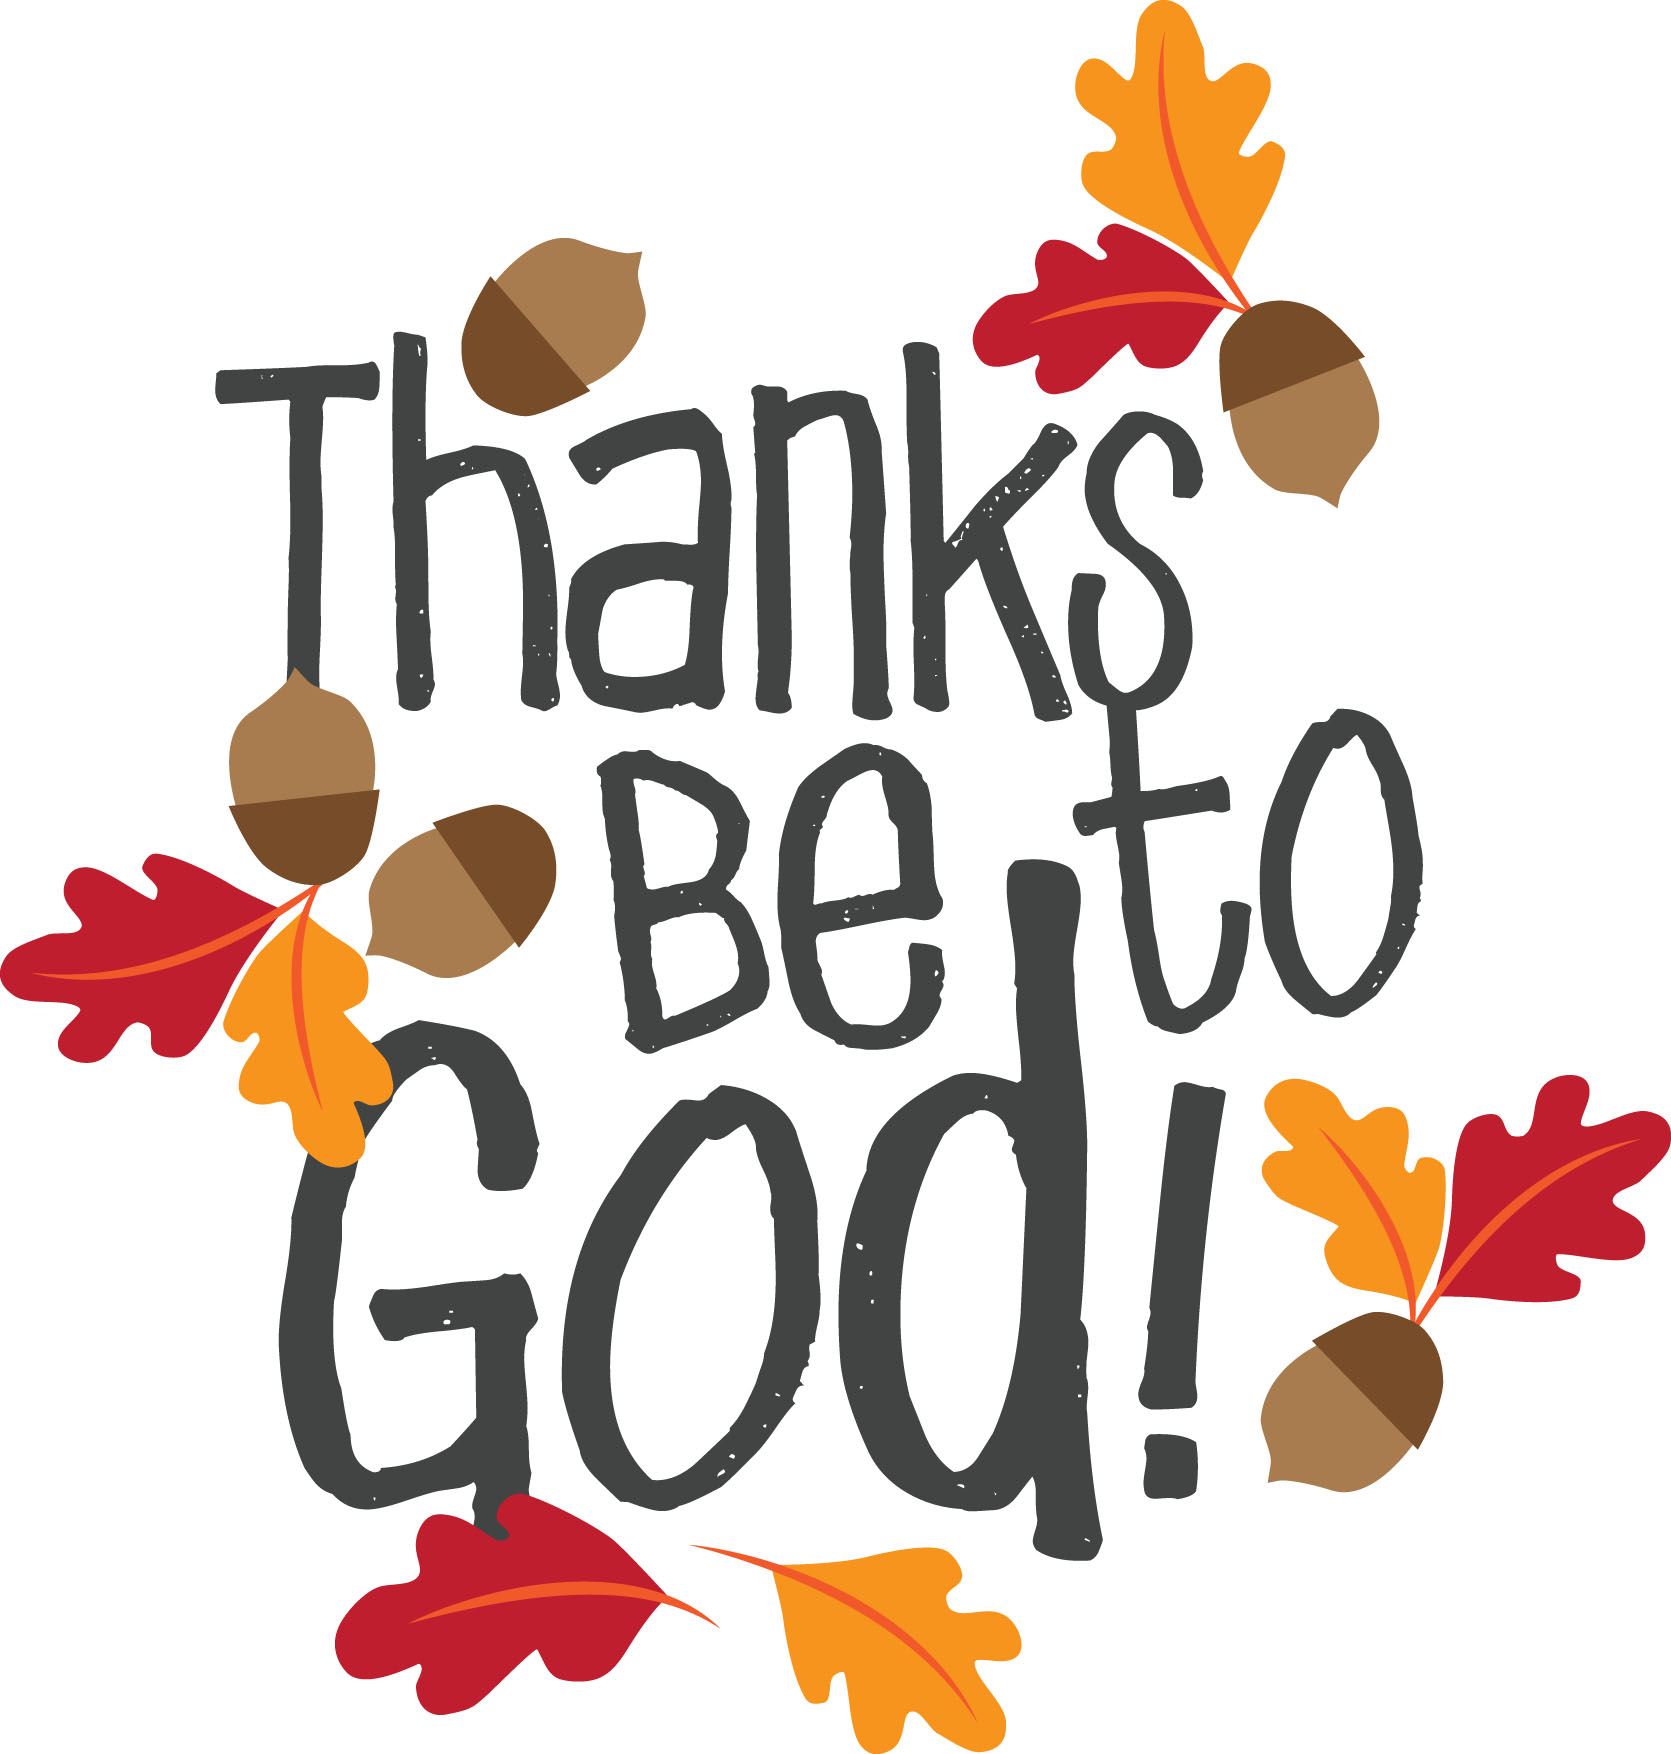 1671x1754 Thanksgiving Clipart Church'89305